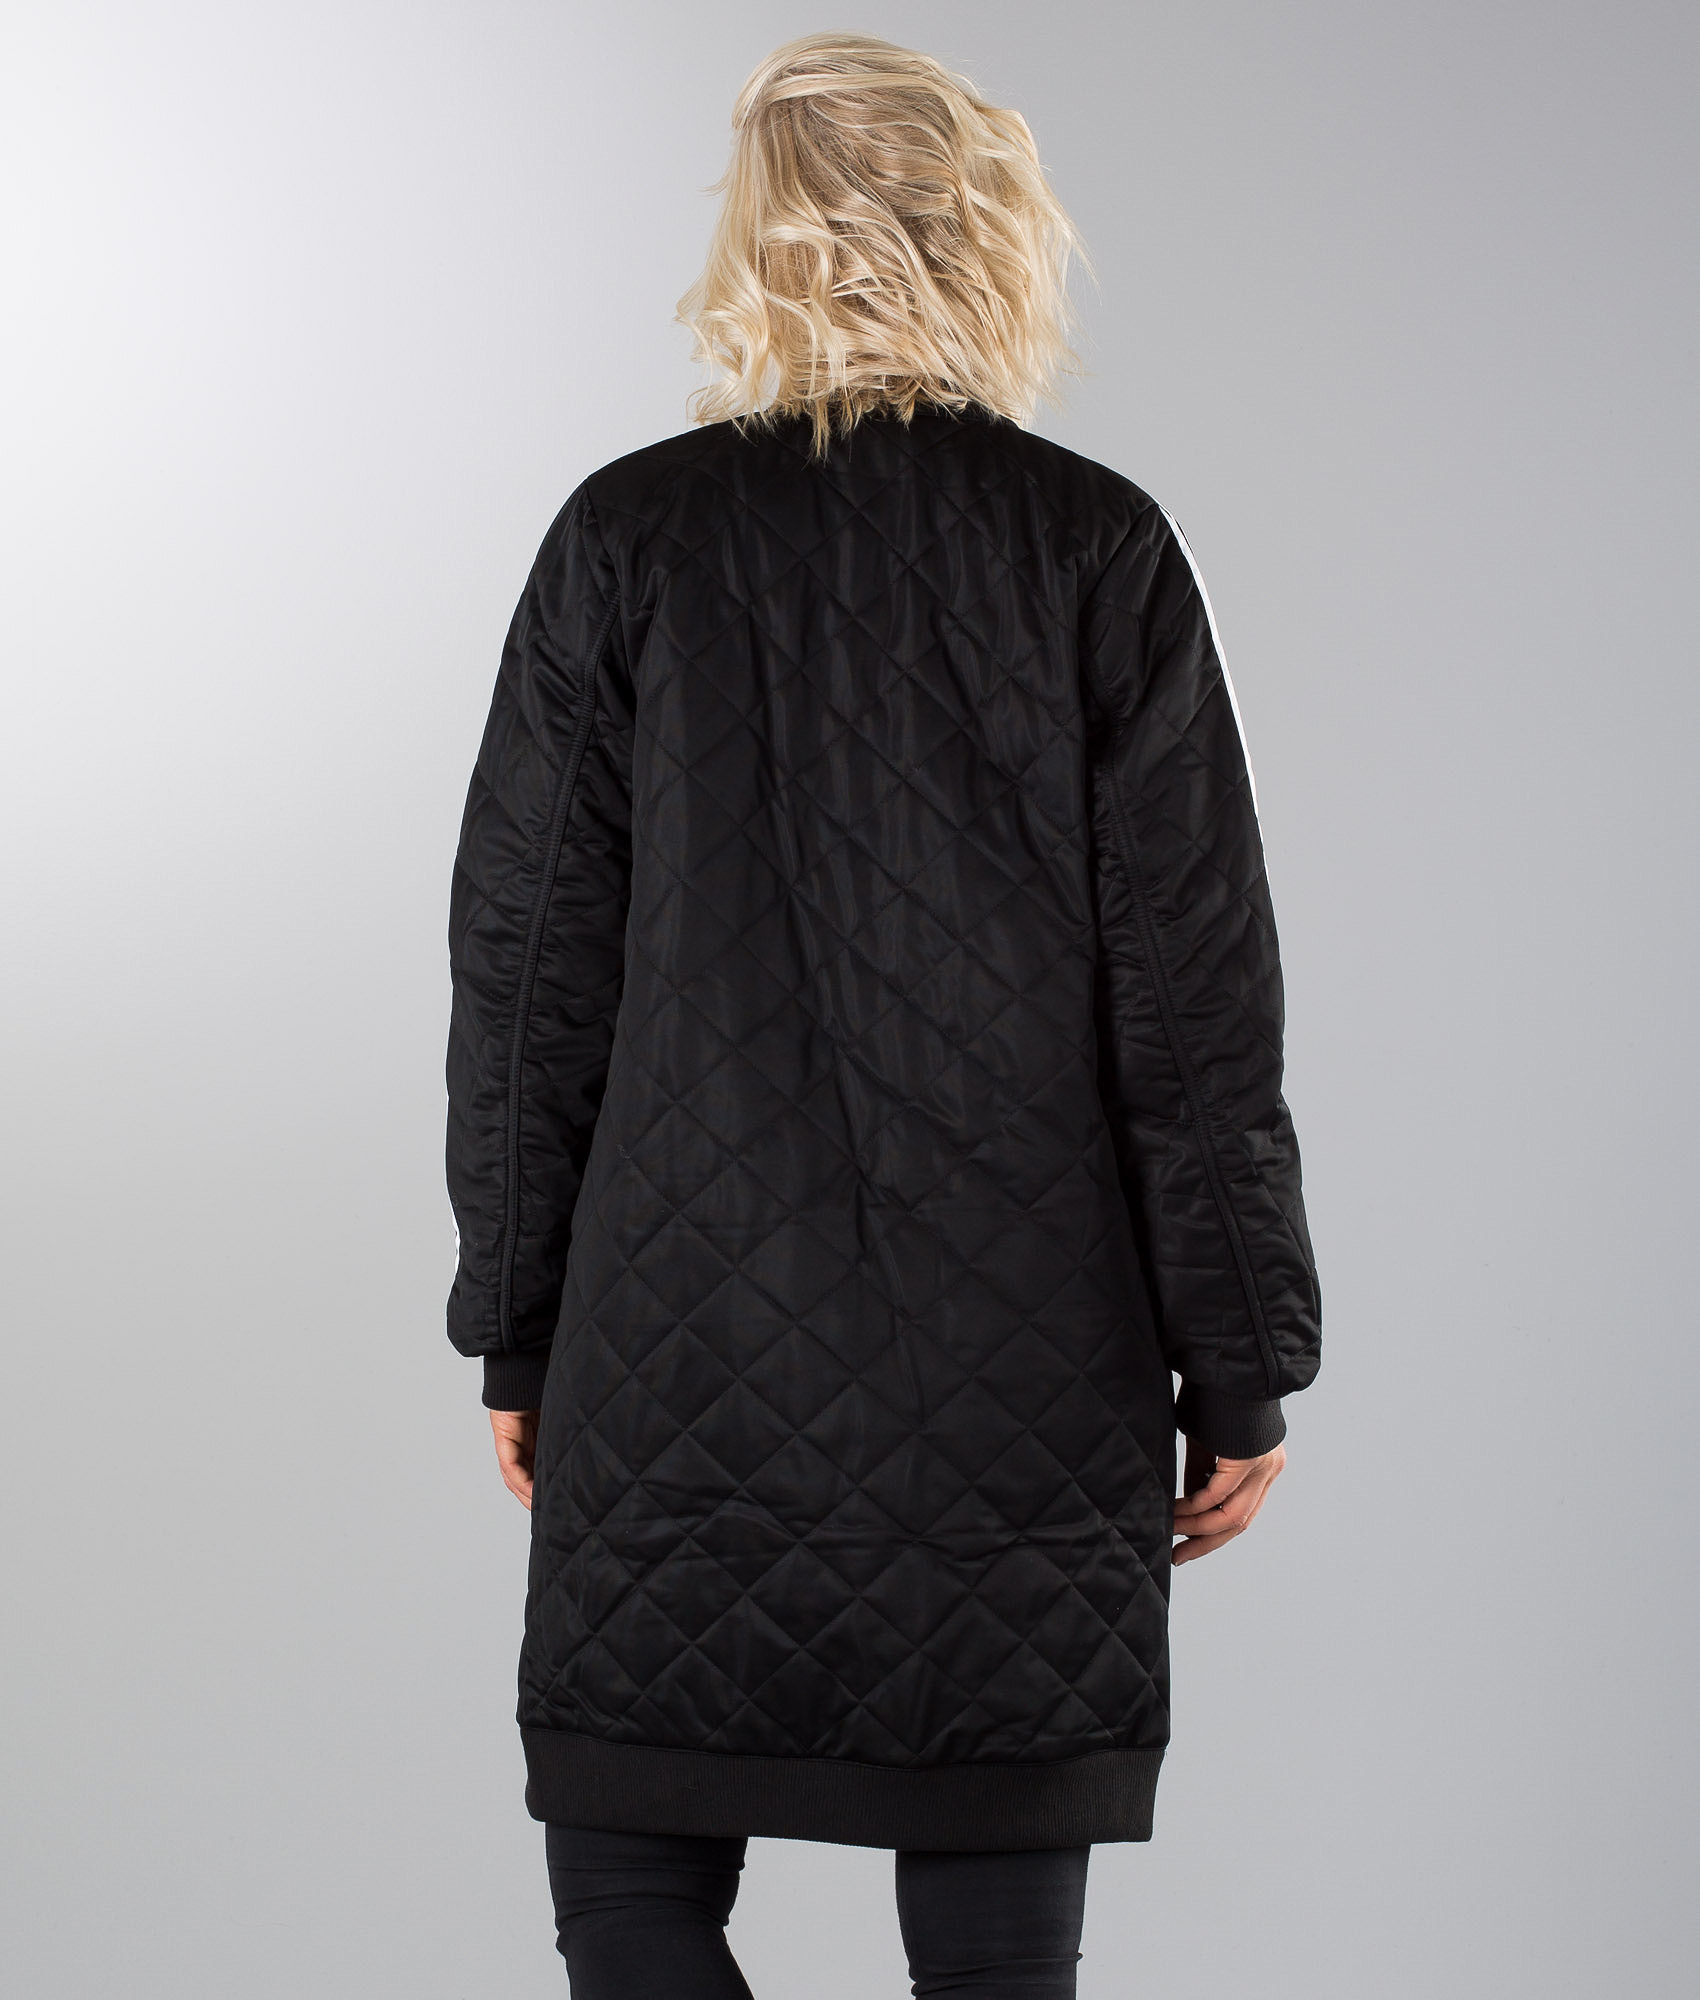 5b2dc22a Adidas Originals Long Bomber Jacket Black - Ridestore.com